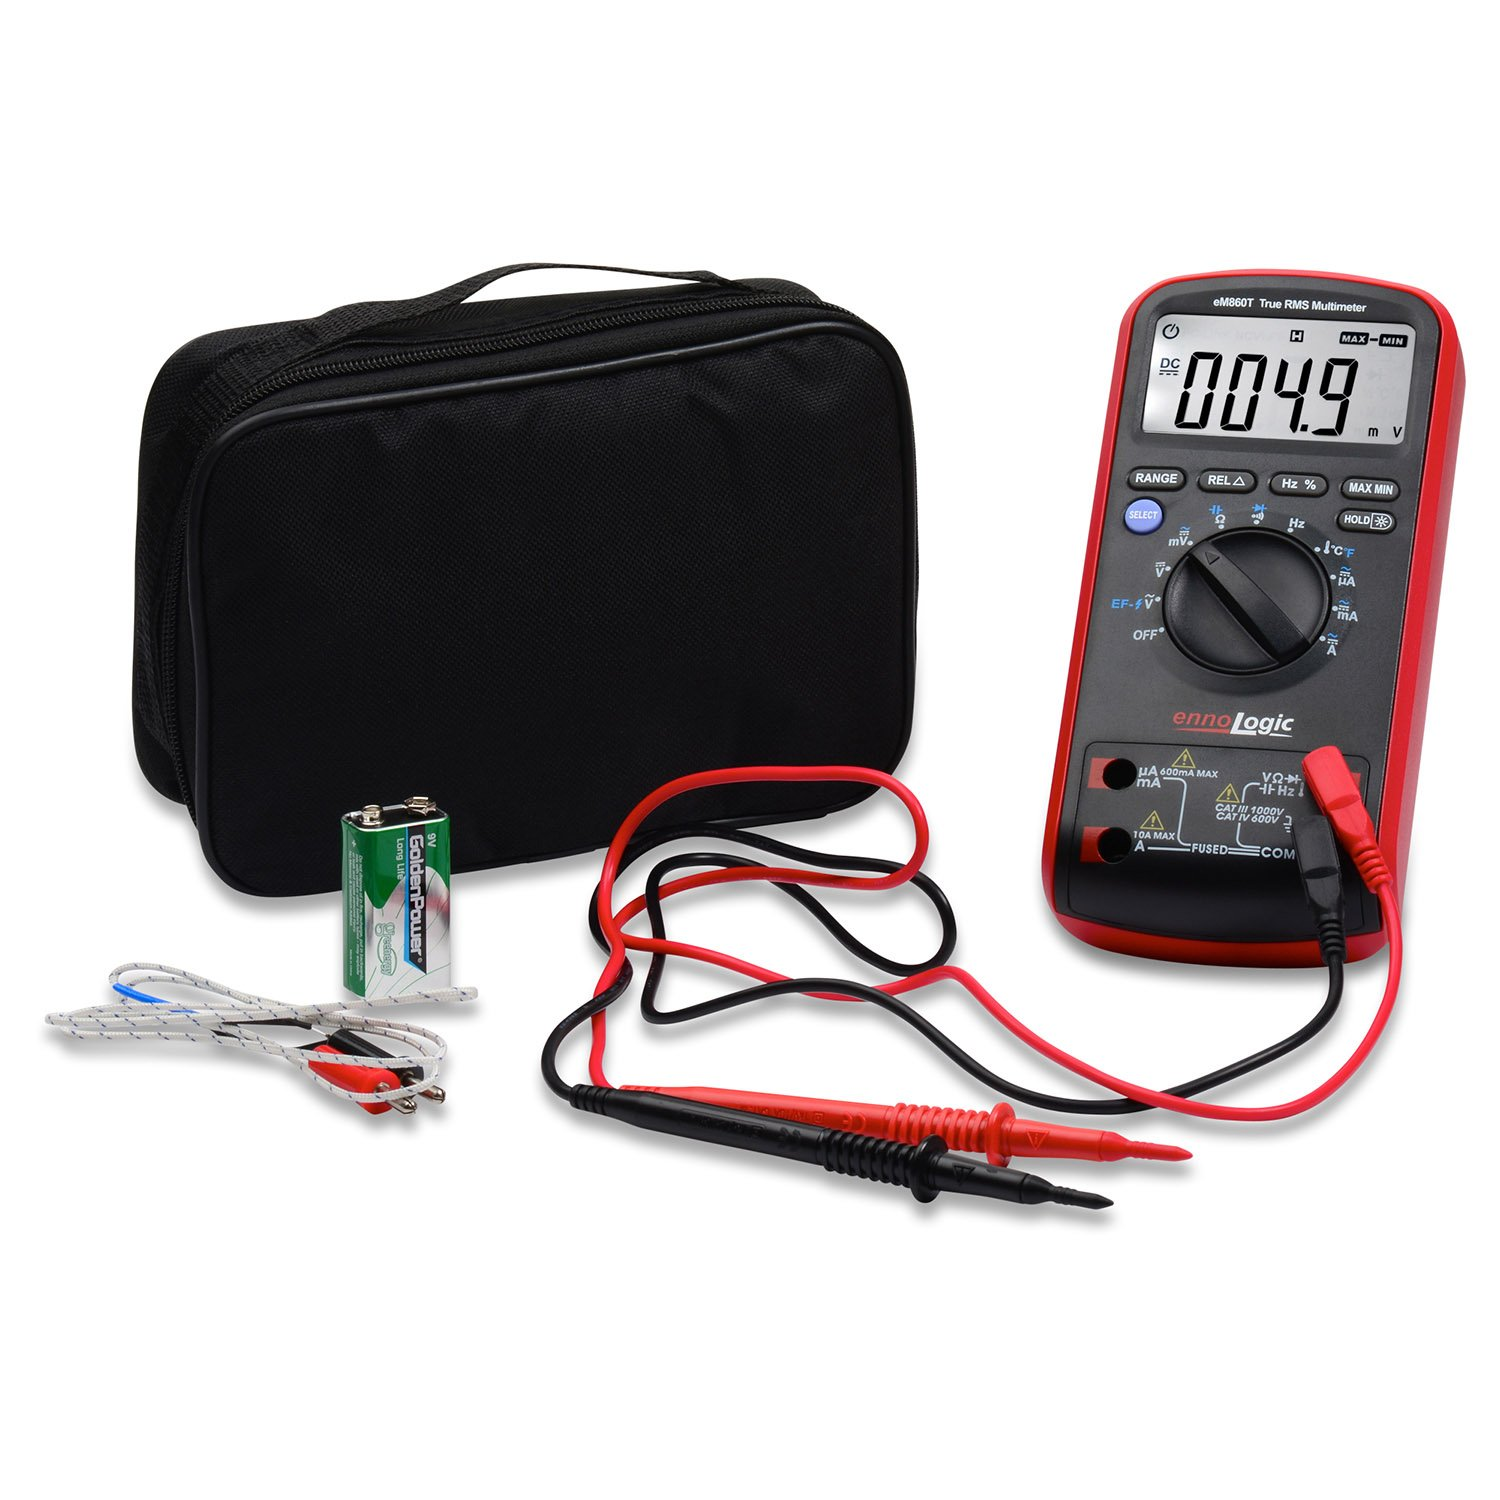 TRMS Digital Multimeter eM860T by ennoLogic – Auto Ranging DMM, Voltage, Current, Resistance, Capacitance, Frequency, Temperature, Non-Contact Voltage Detect, Carrying Case